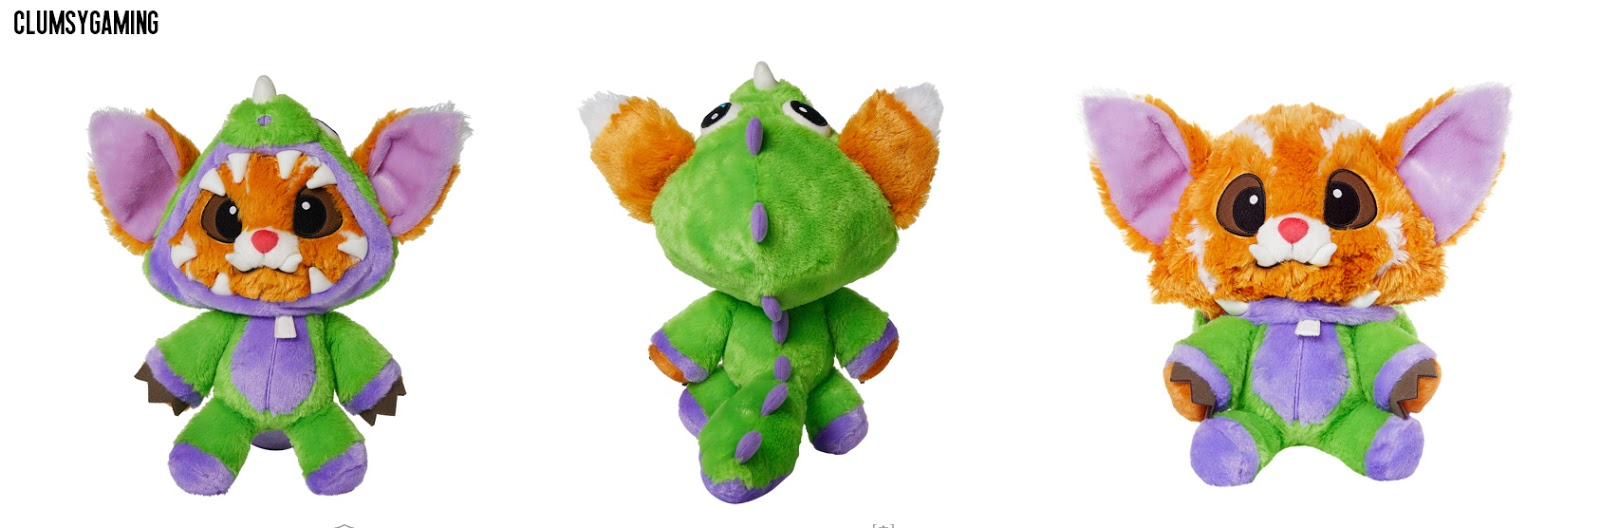 peluche gnar dinosaurio league of legends